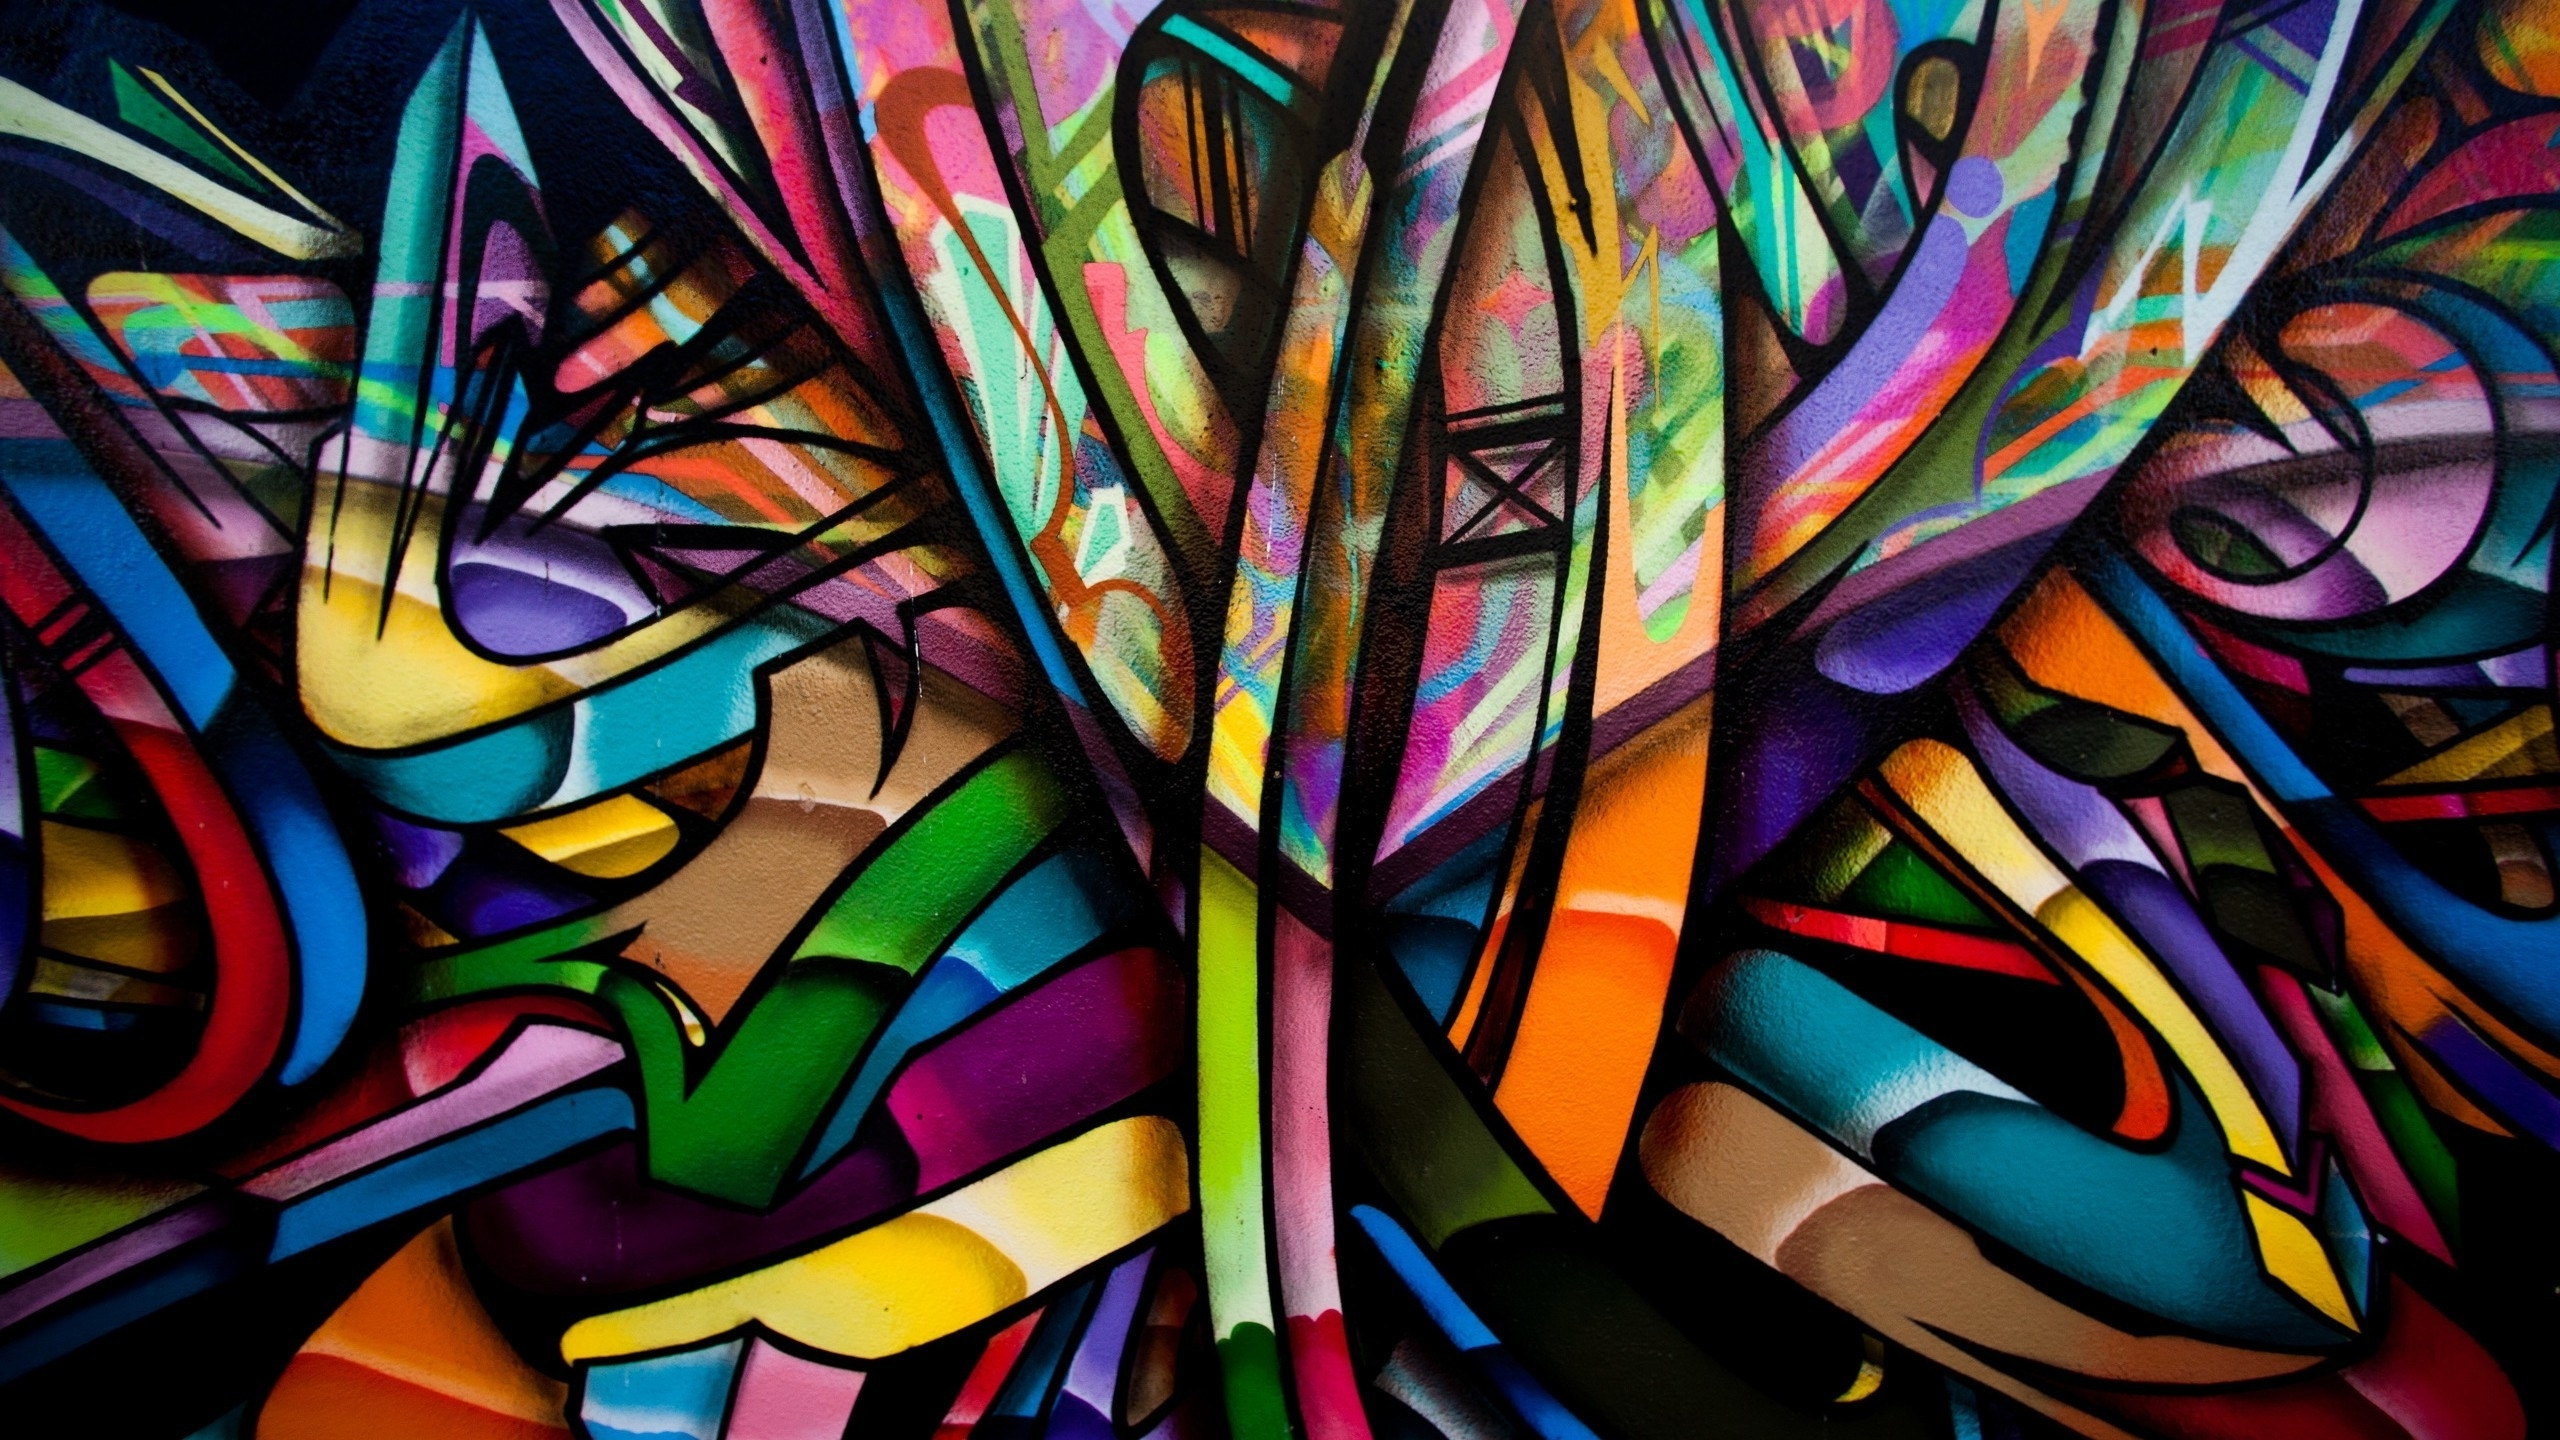 Abstract, Colorful, Graffiti, Walls, Artwork, Painting Wallpapers Within Best And Newest Abstract Graffiti Wall Art (View 6 of 20)